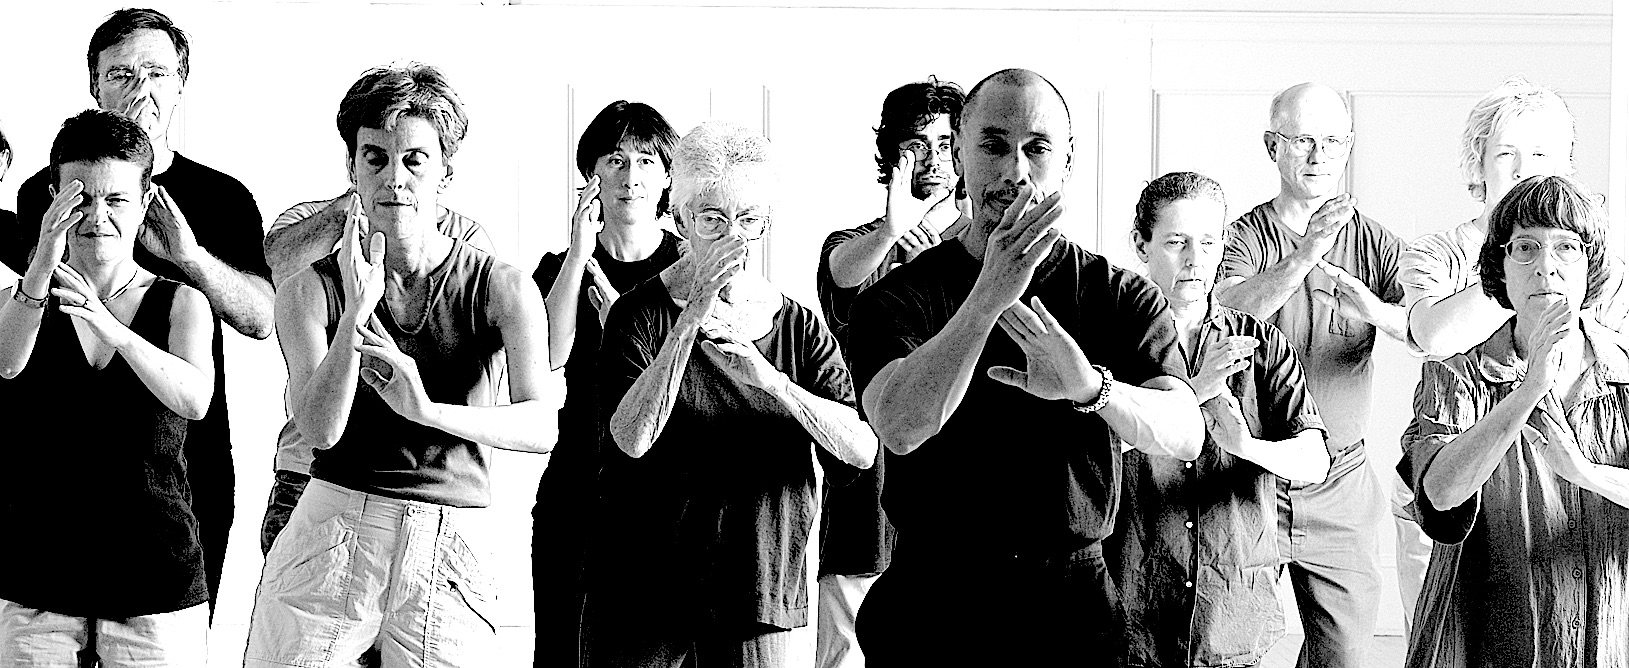 Tai Chi Group of Students Practicing Postures